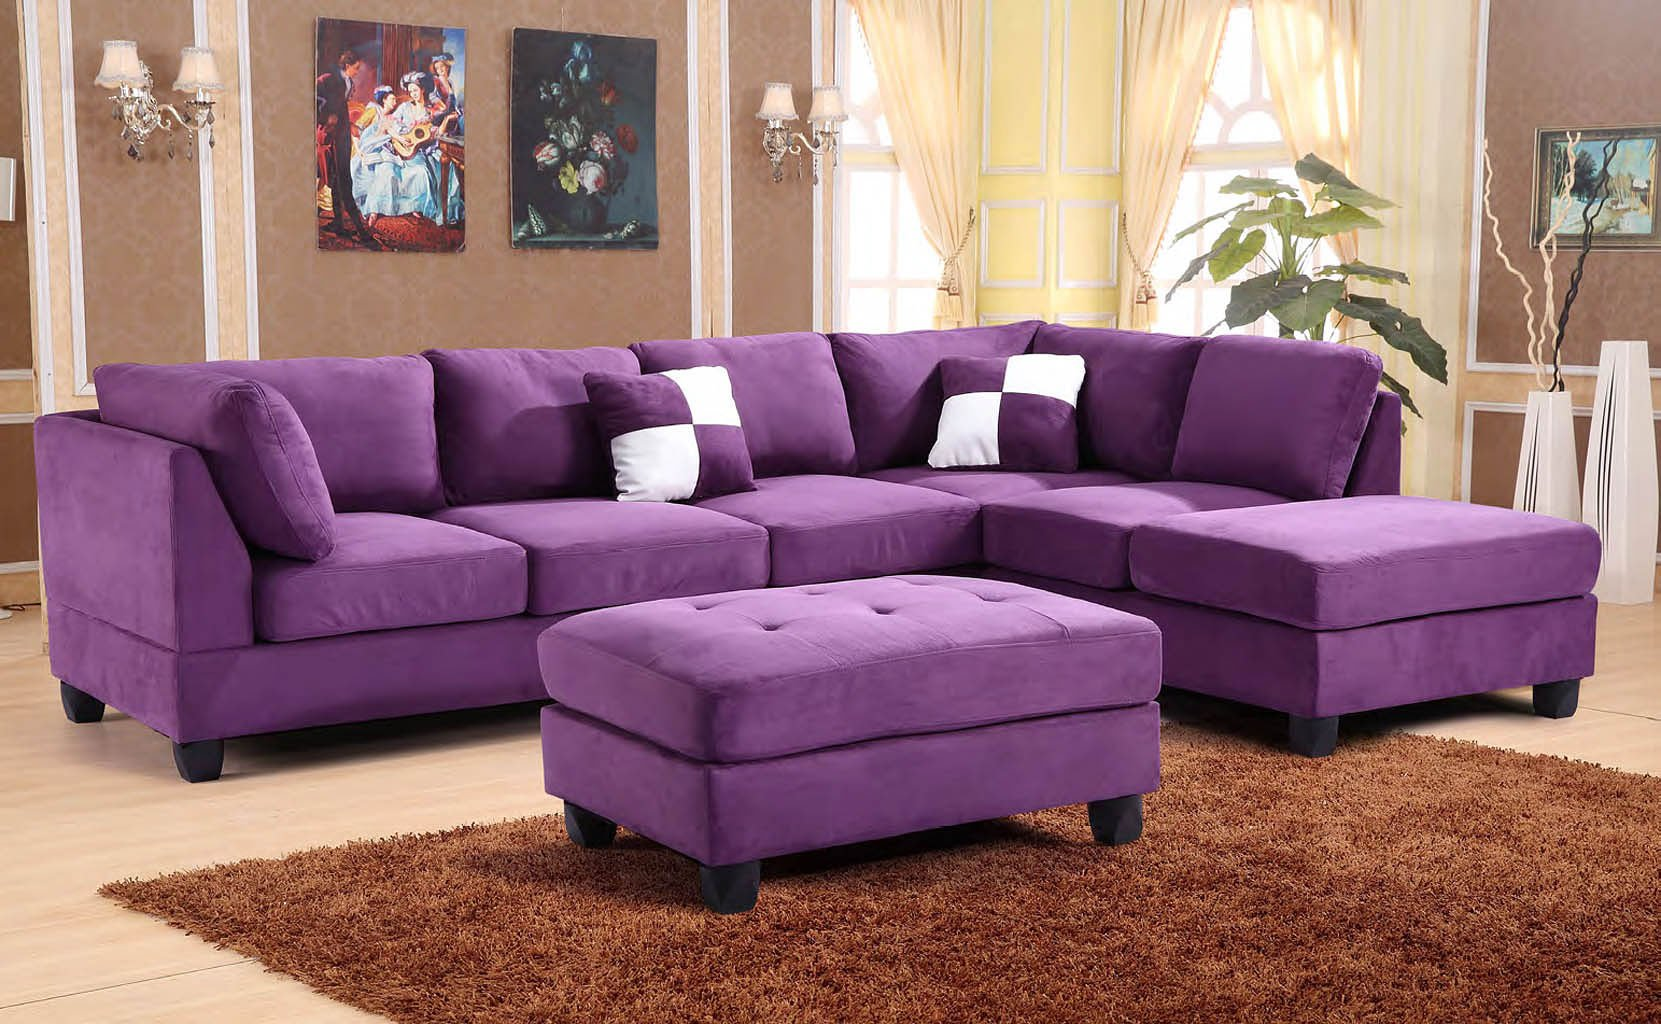 sleeper sofa sectional couch walmart pull out g637 reversible set (purple) - living room sets ...